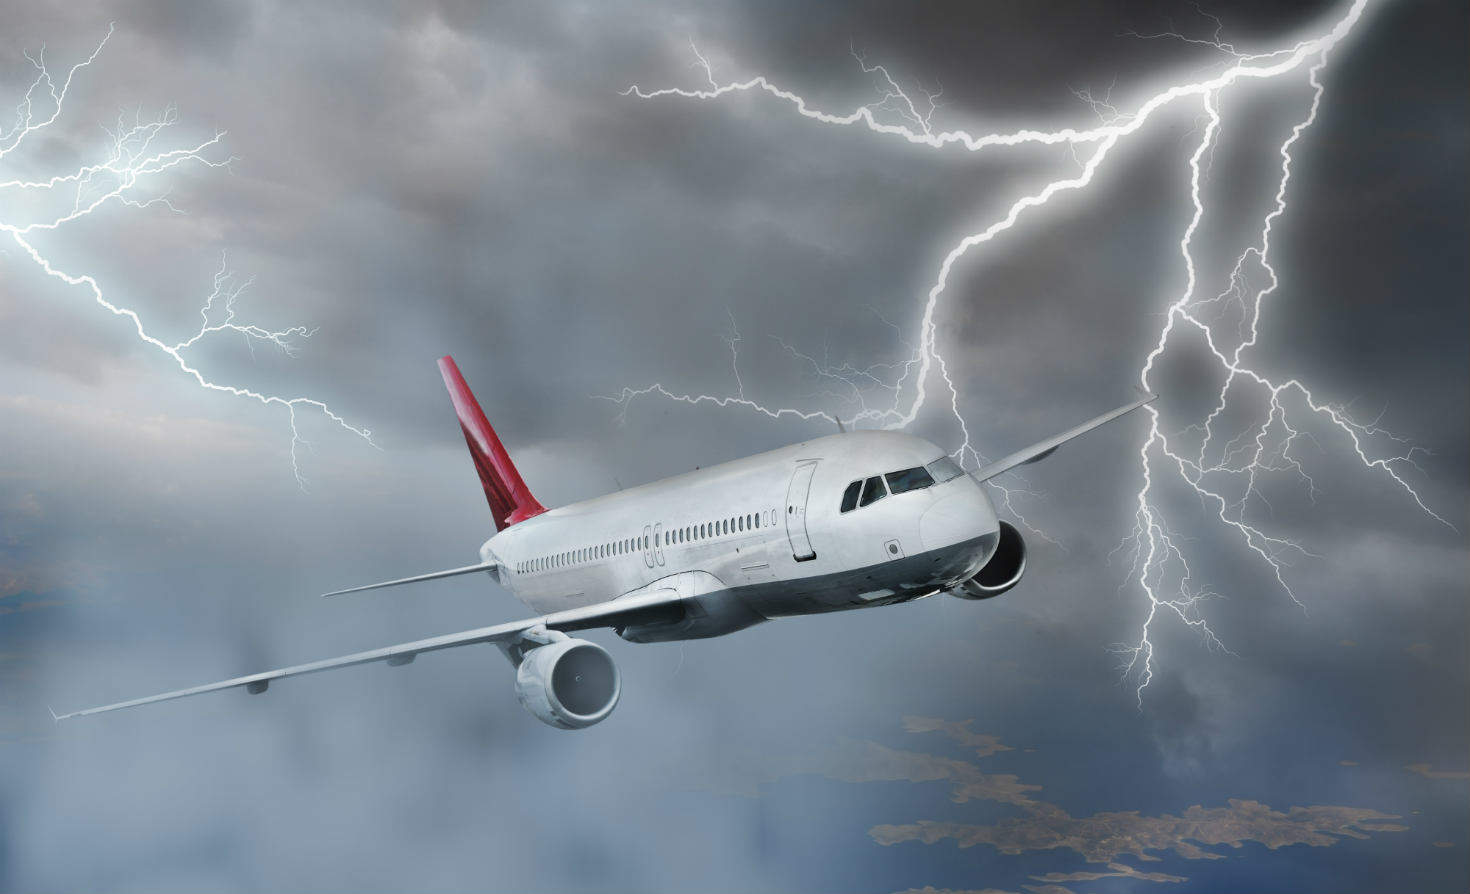 Photo of passenger plane during a storm